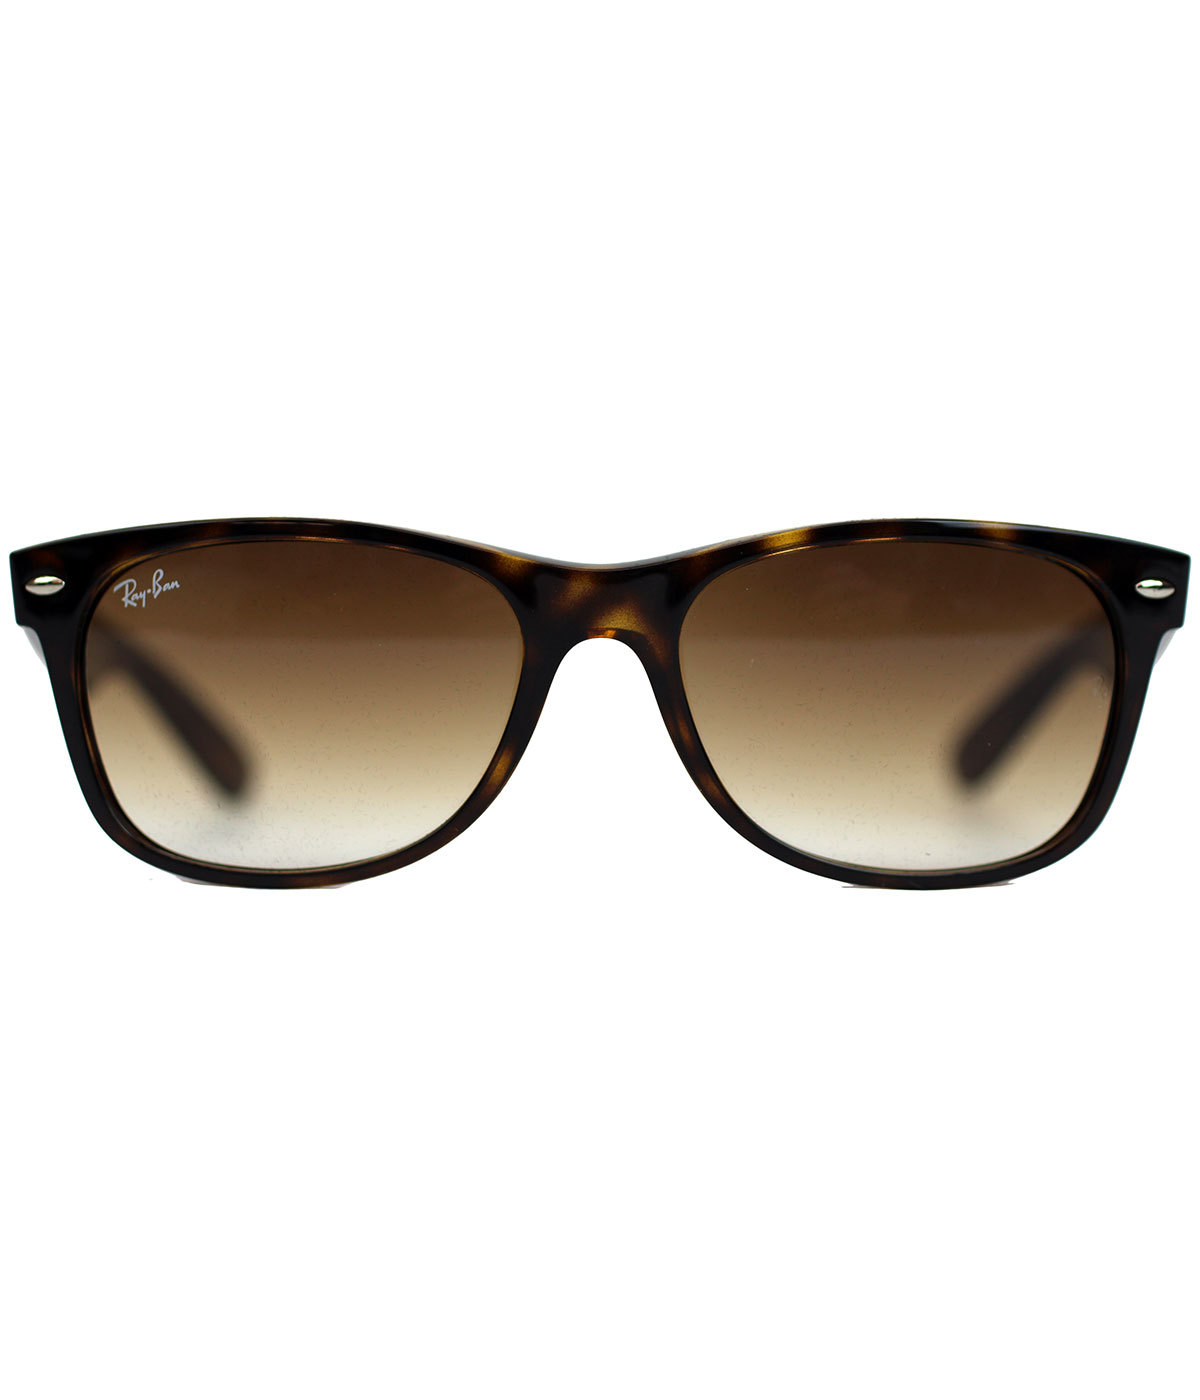 New Wayfarer RAY-BAN Retro 60s Sunglasses - Havana